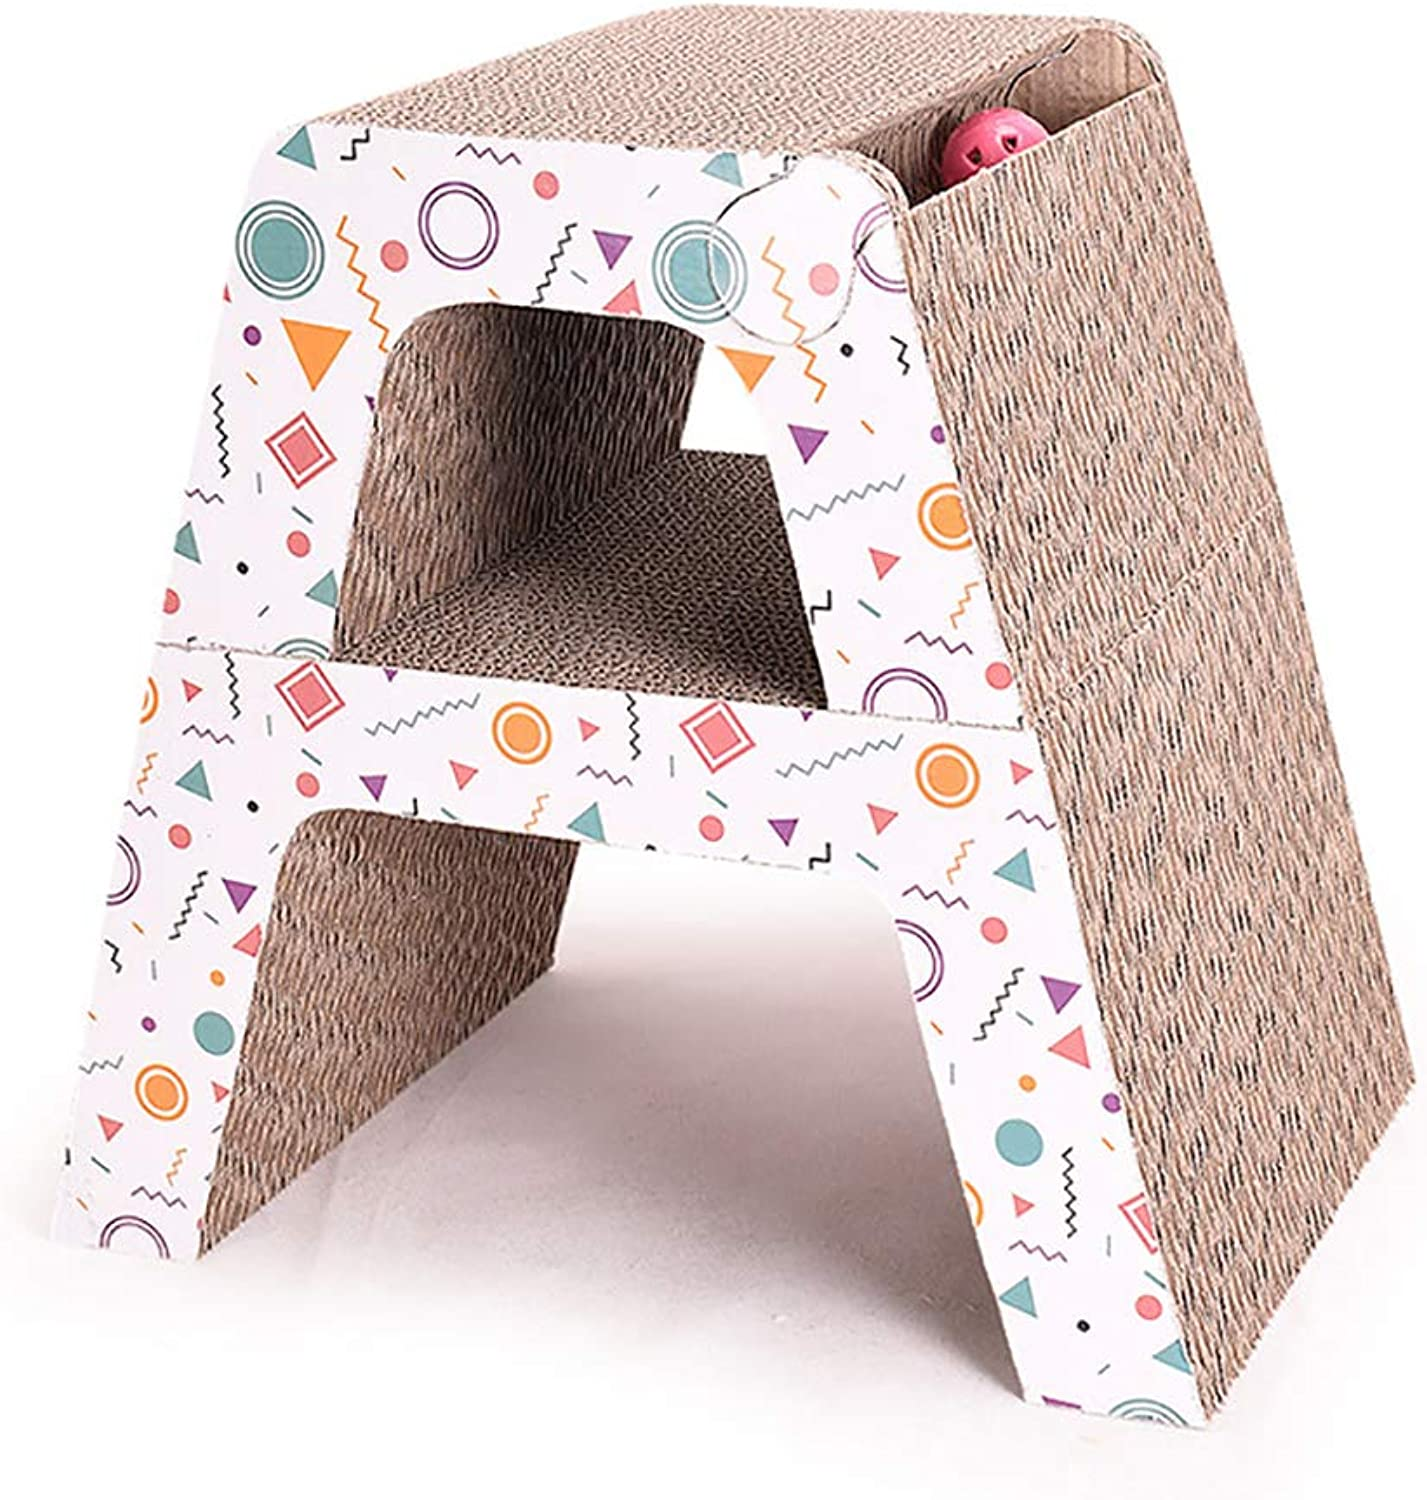 Pet cat Toy Grinding Claw Toy Track Bell Cat Scratch Board Letter A Double Layer Corrugated Paper 40  27.8  21.2 cm